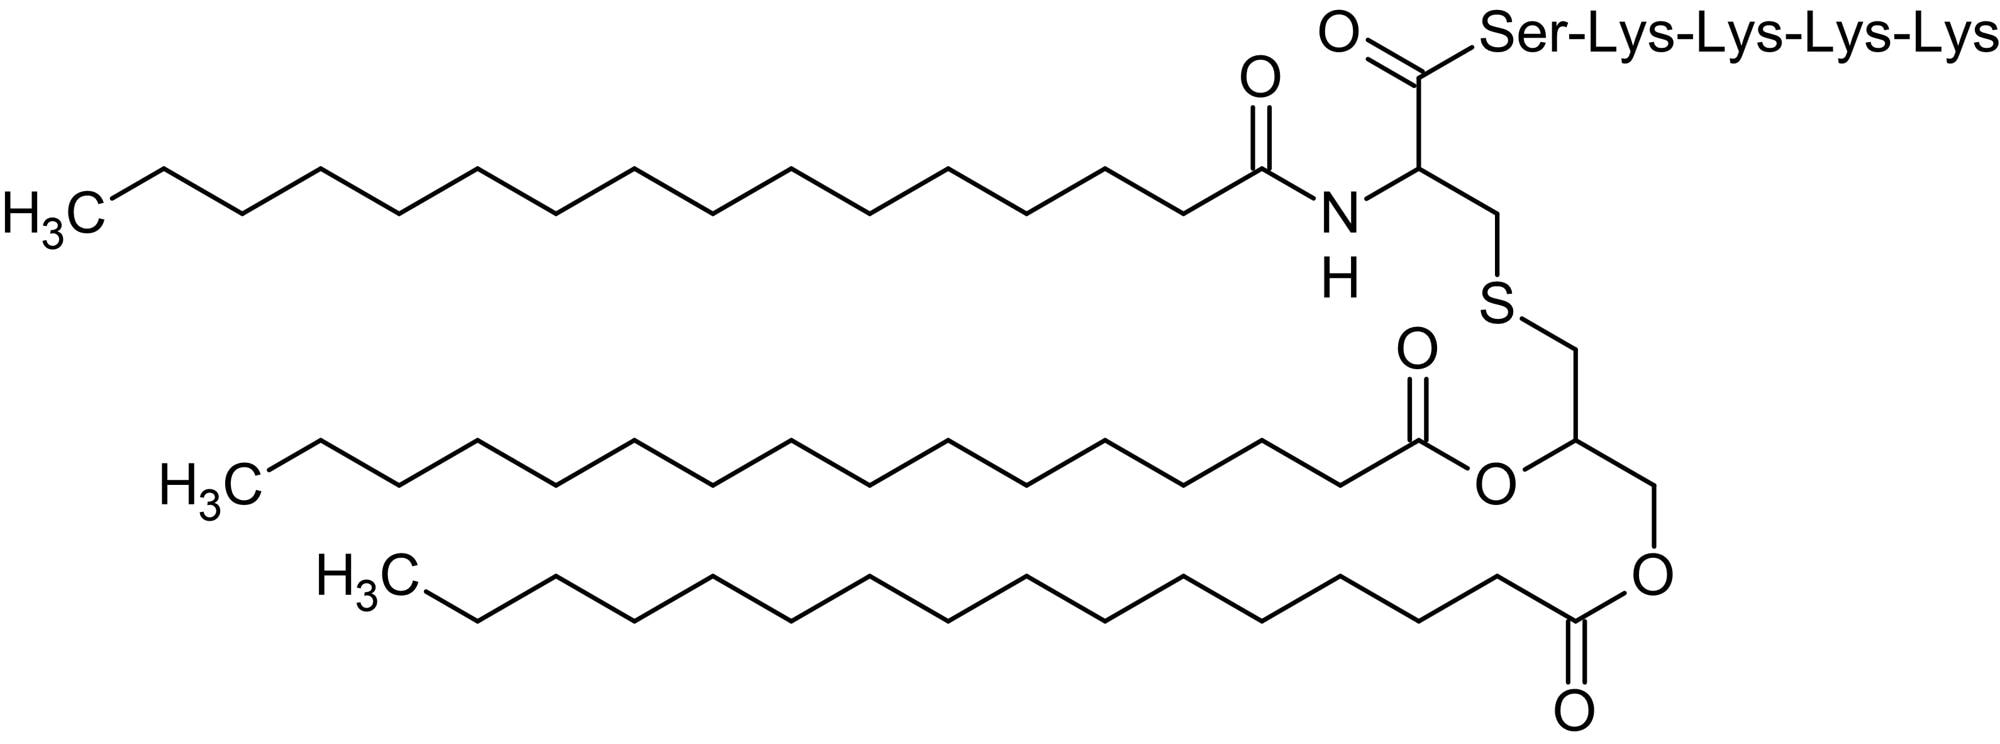 Chemical Structure - Pam3Cys-Ser-(Lys)4, TLR1/TLR2 agonist (ab142085)